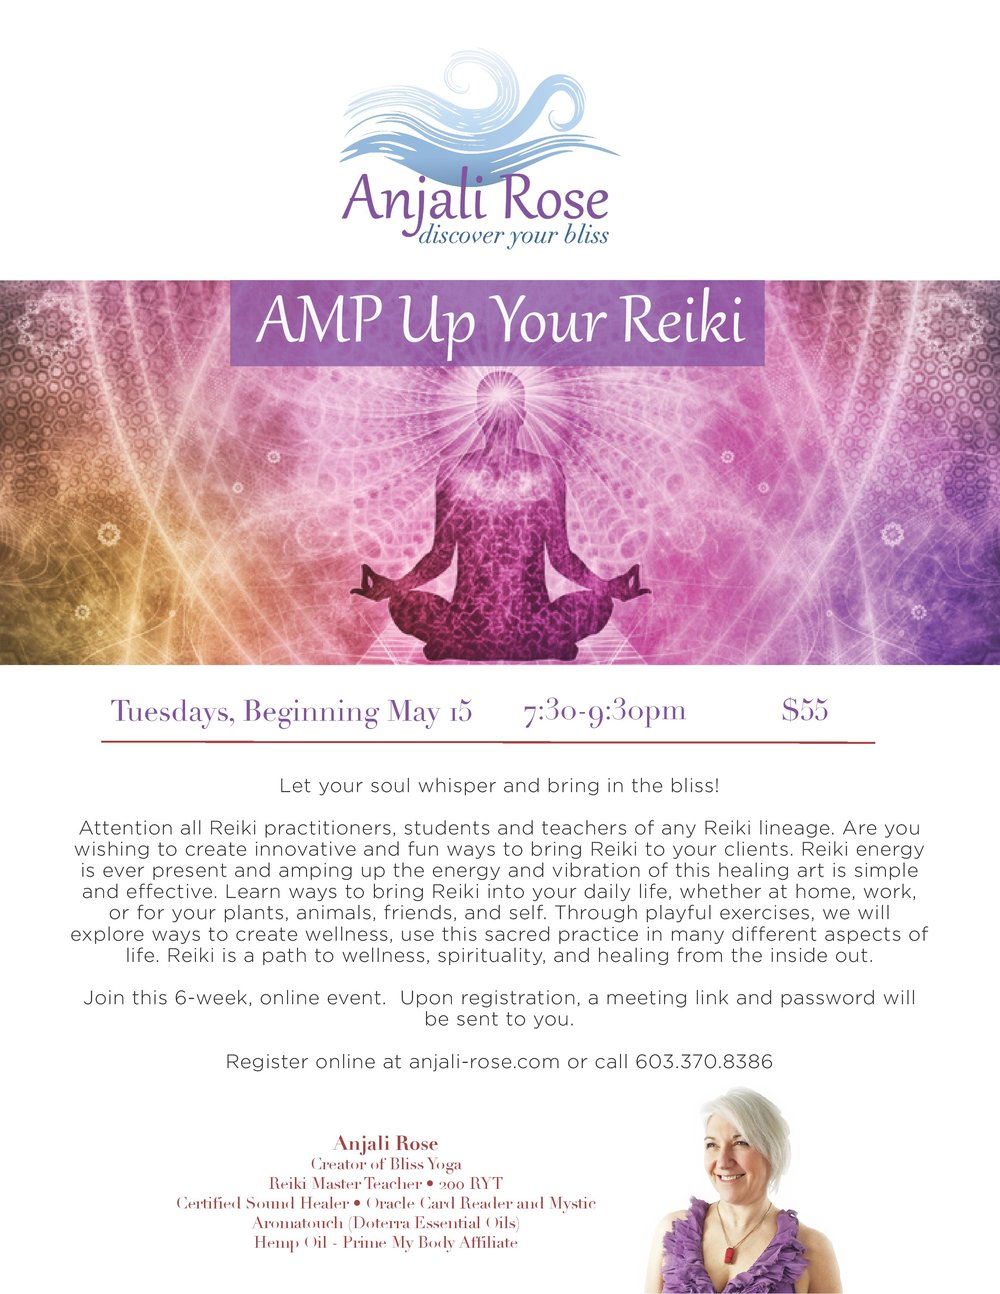 AR_AMP Up Your Reiki_Poster-page-001.jpg